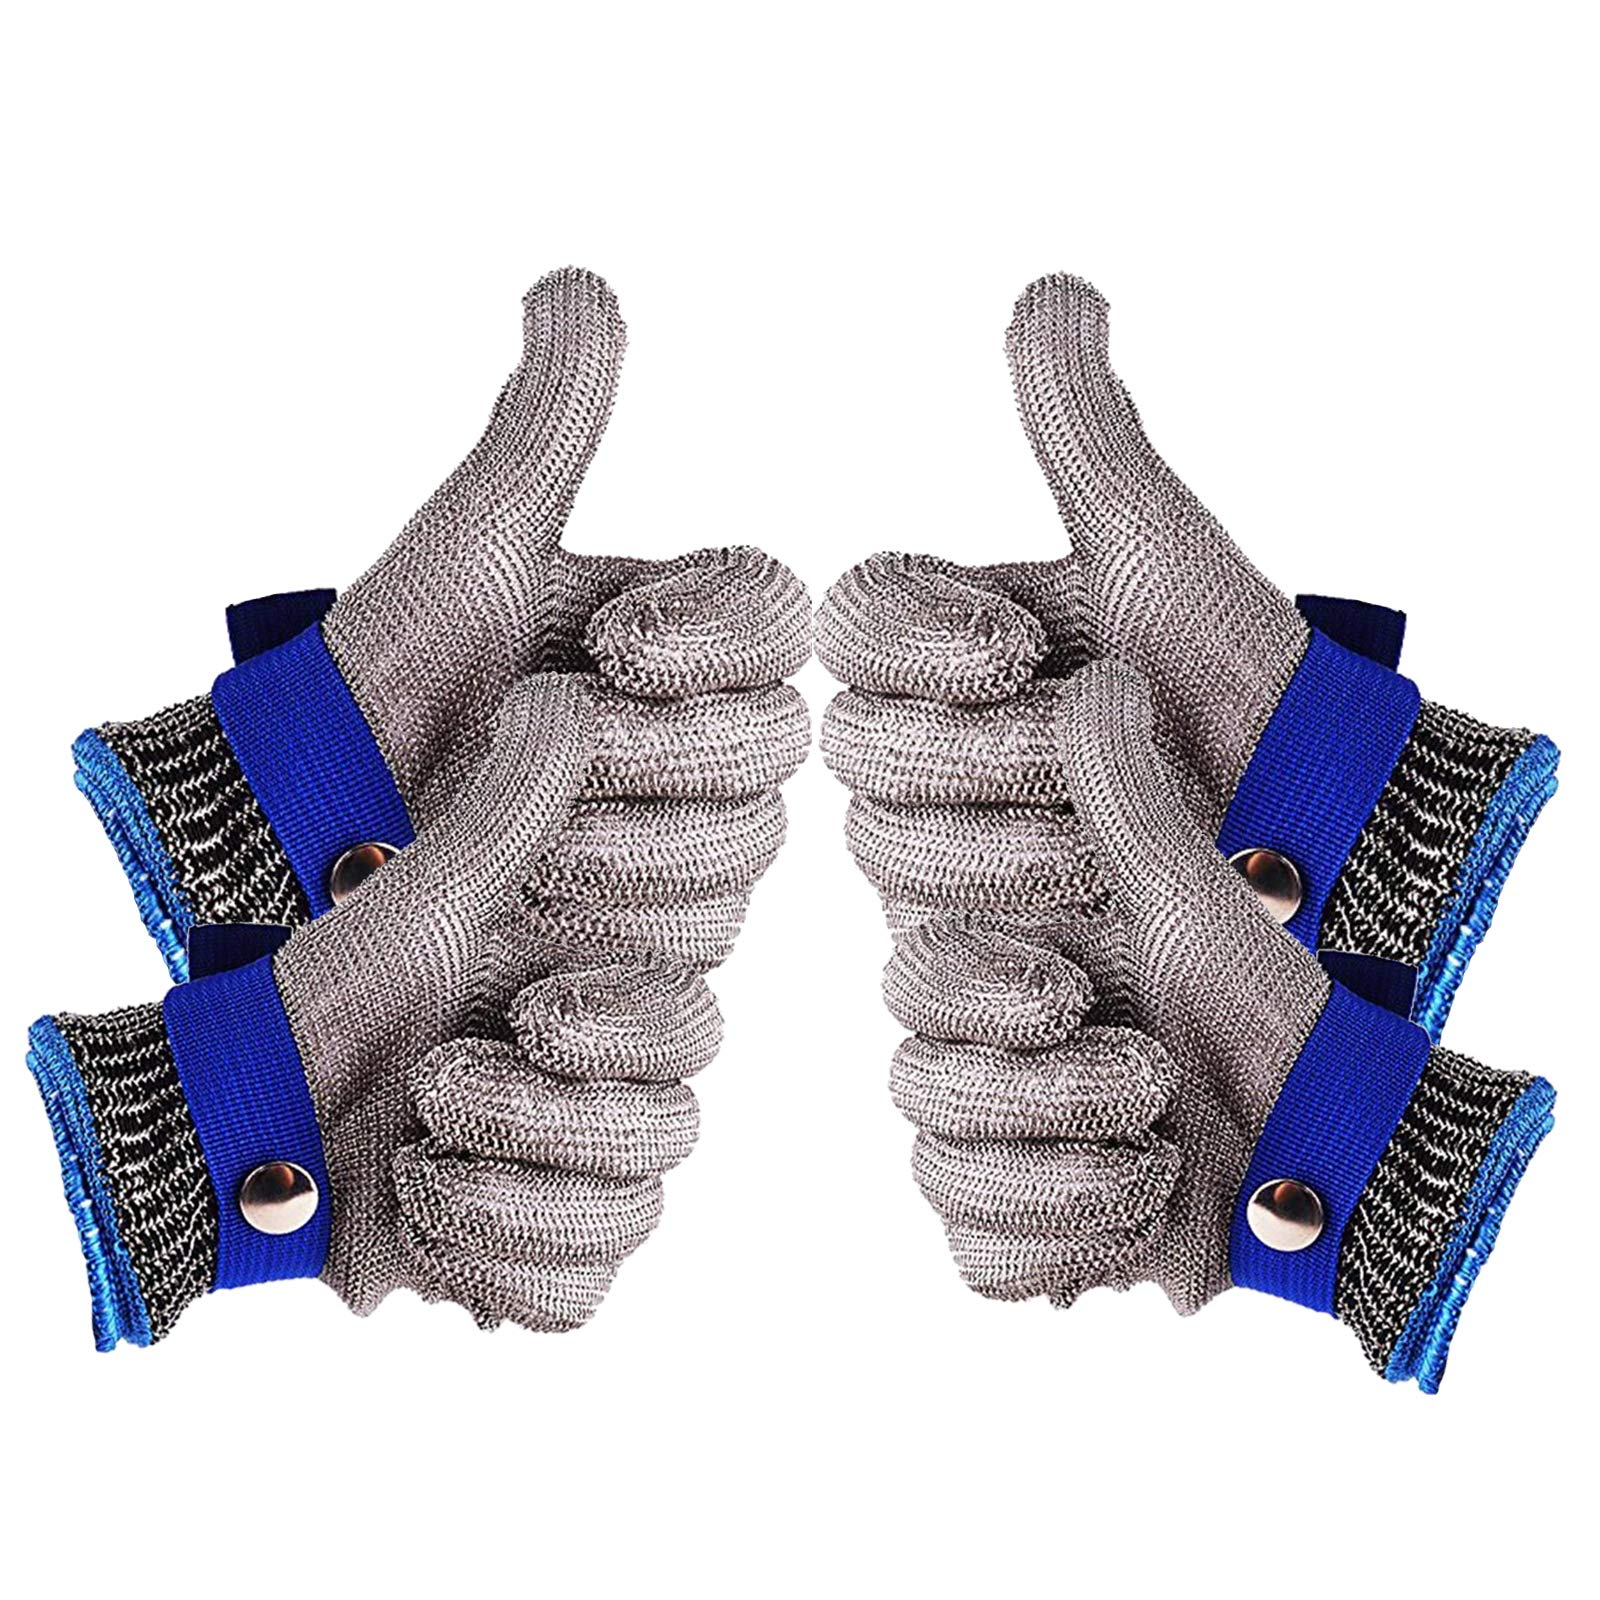 Safety Cut Proof Stab Resistant 316L Stainless Steel Wire Butcher Glove High Performance Level 5 Protection Size M